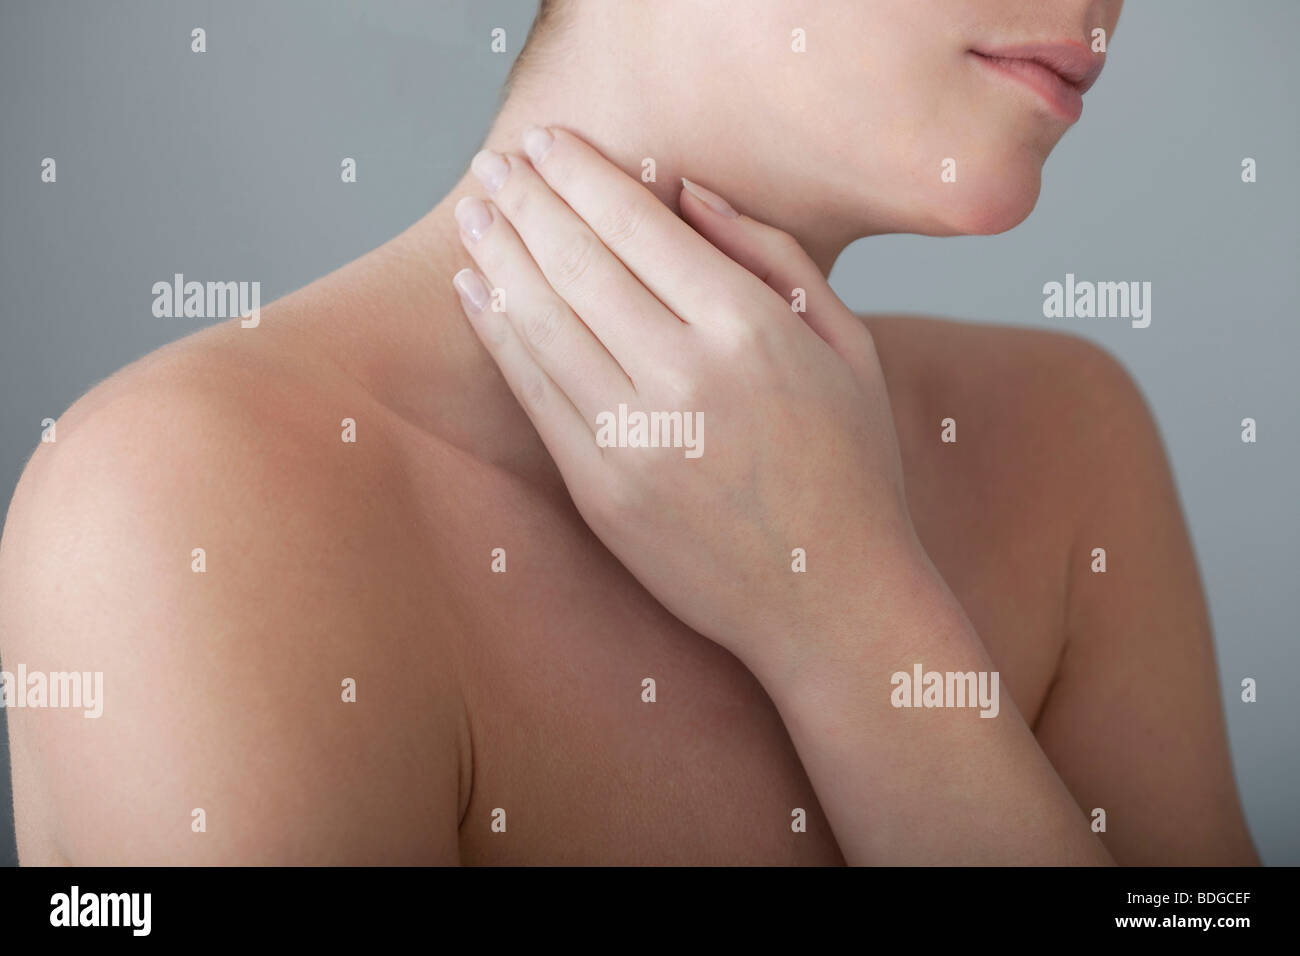 CERVICALGIA IN A WOMAN - Stock Image